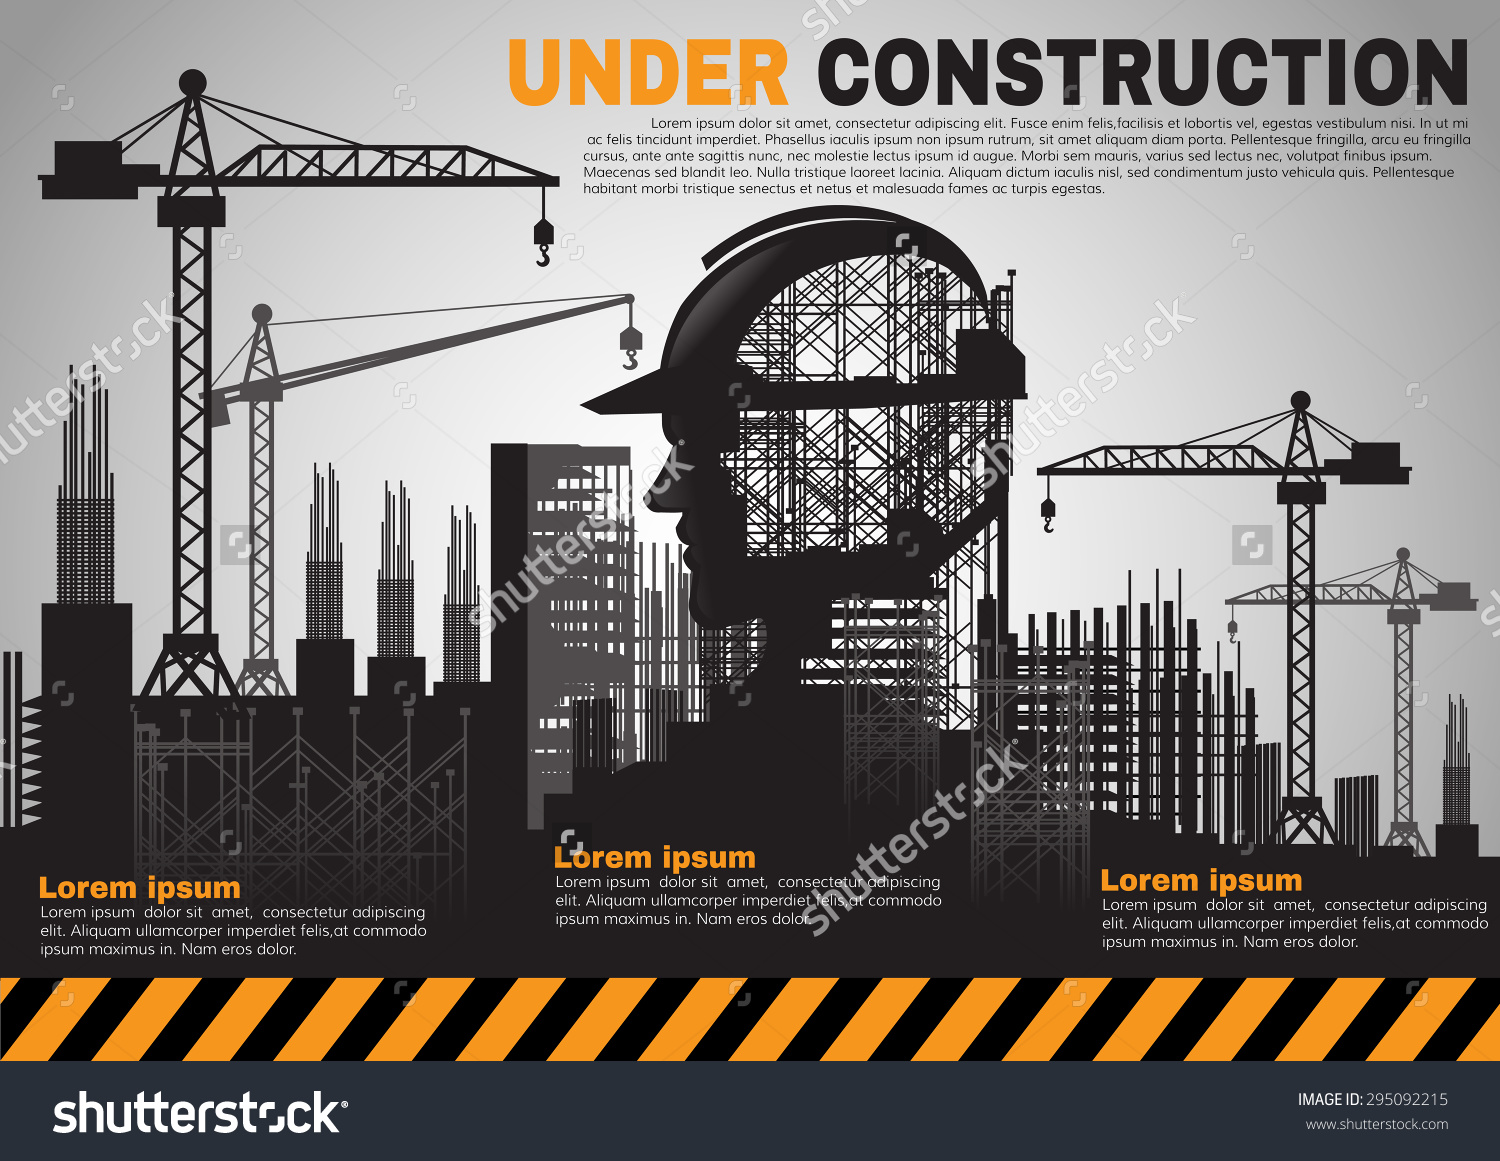 Construction site background clipart picture library download Construction site background clipart - ClipartFest picture library download